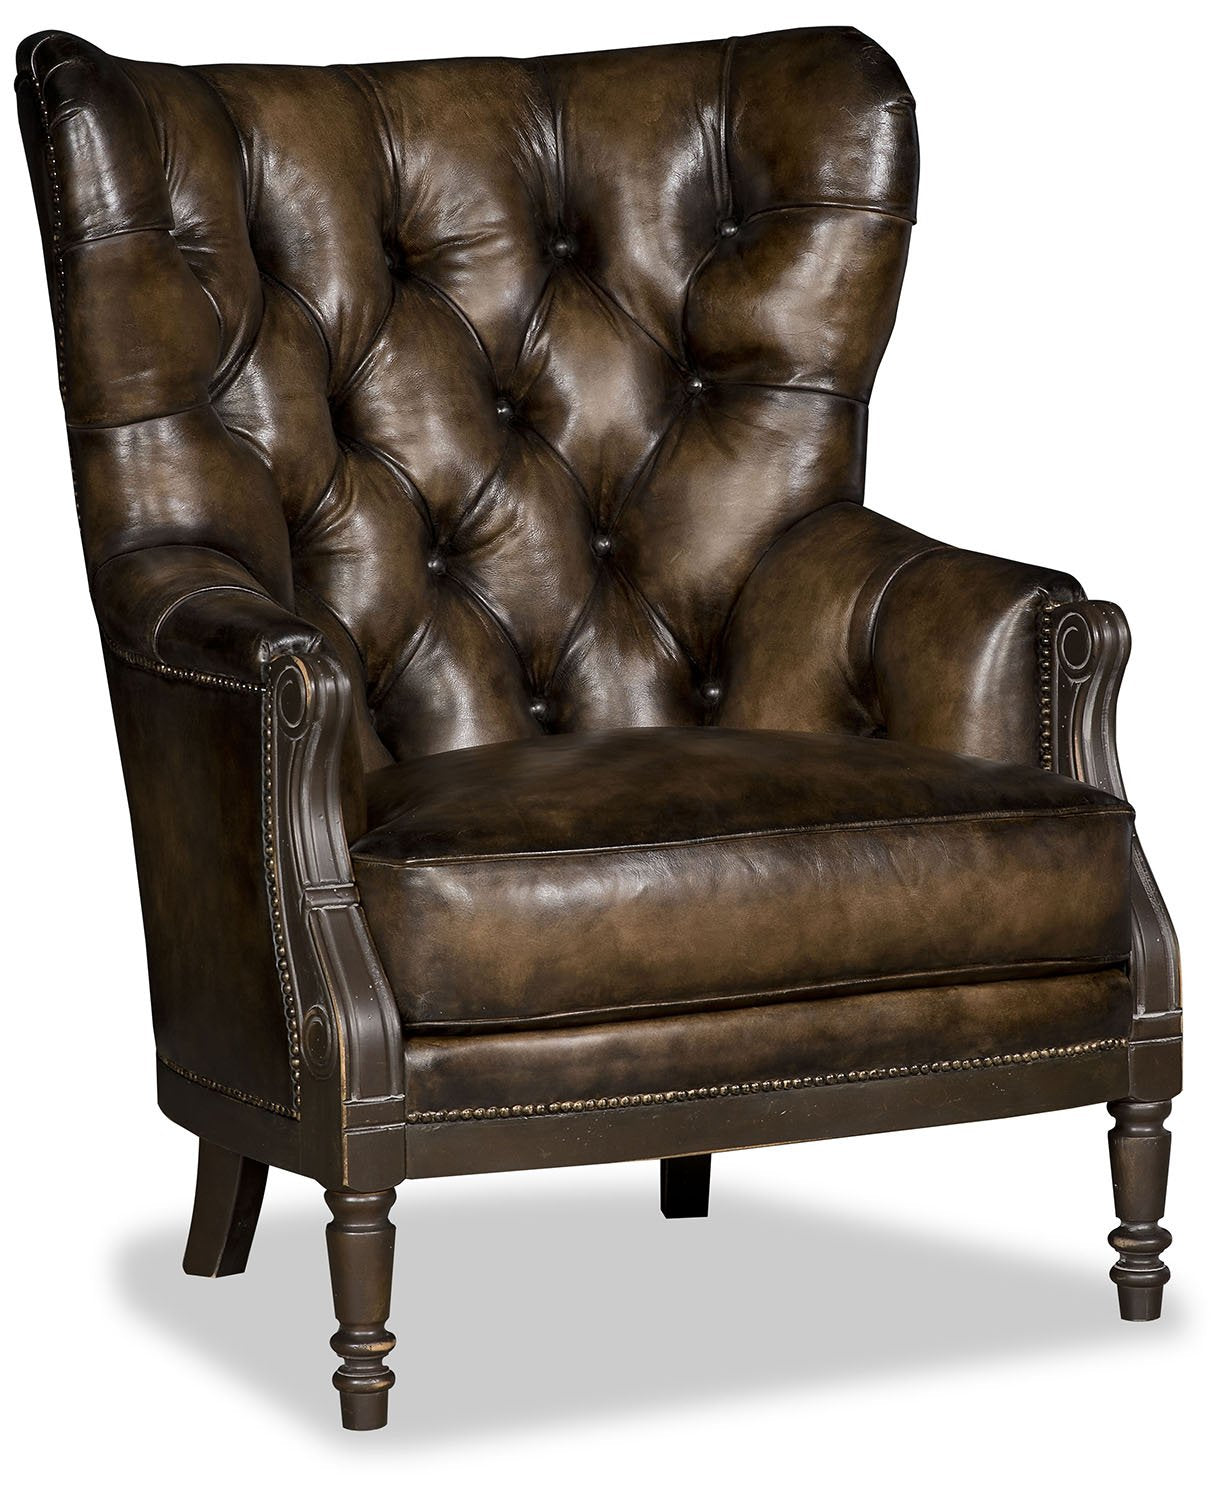 Coby Chair in Walnut Tufted Leather